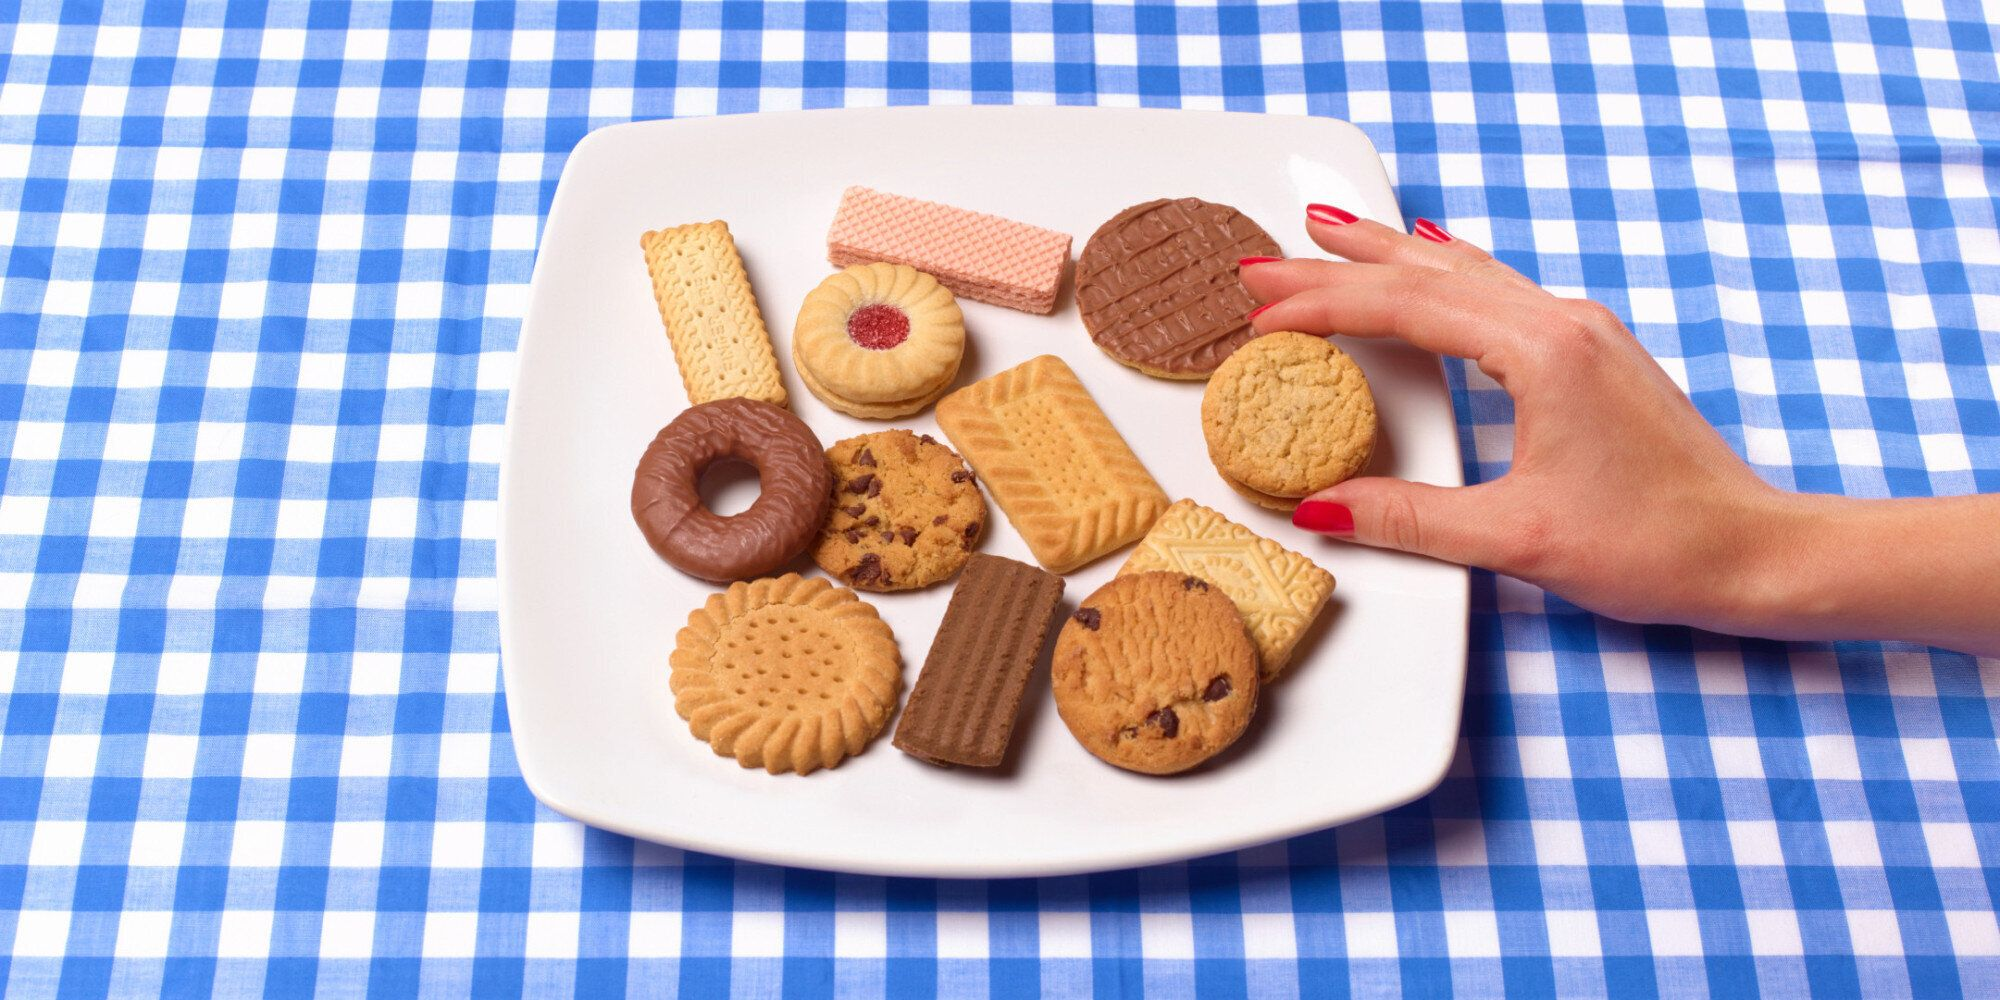 How To Stop Overeating: A Small, Sweet Treat Could Stop